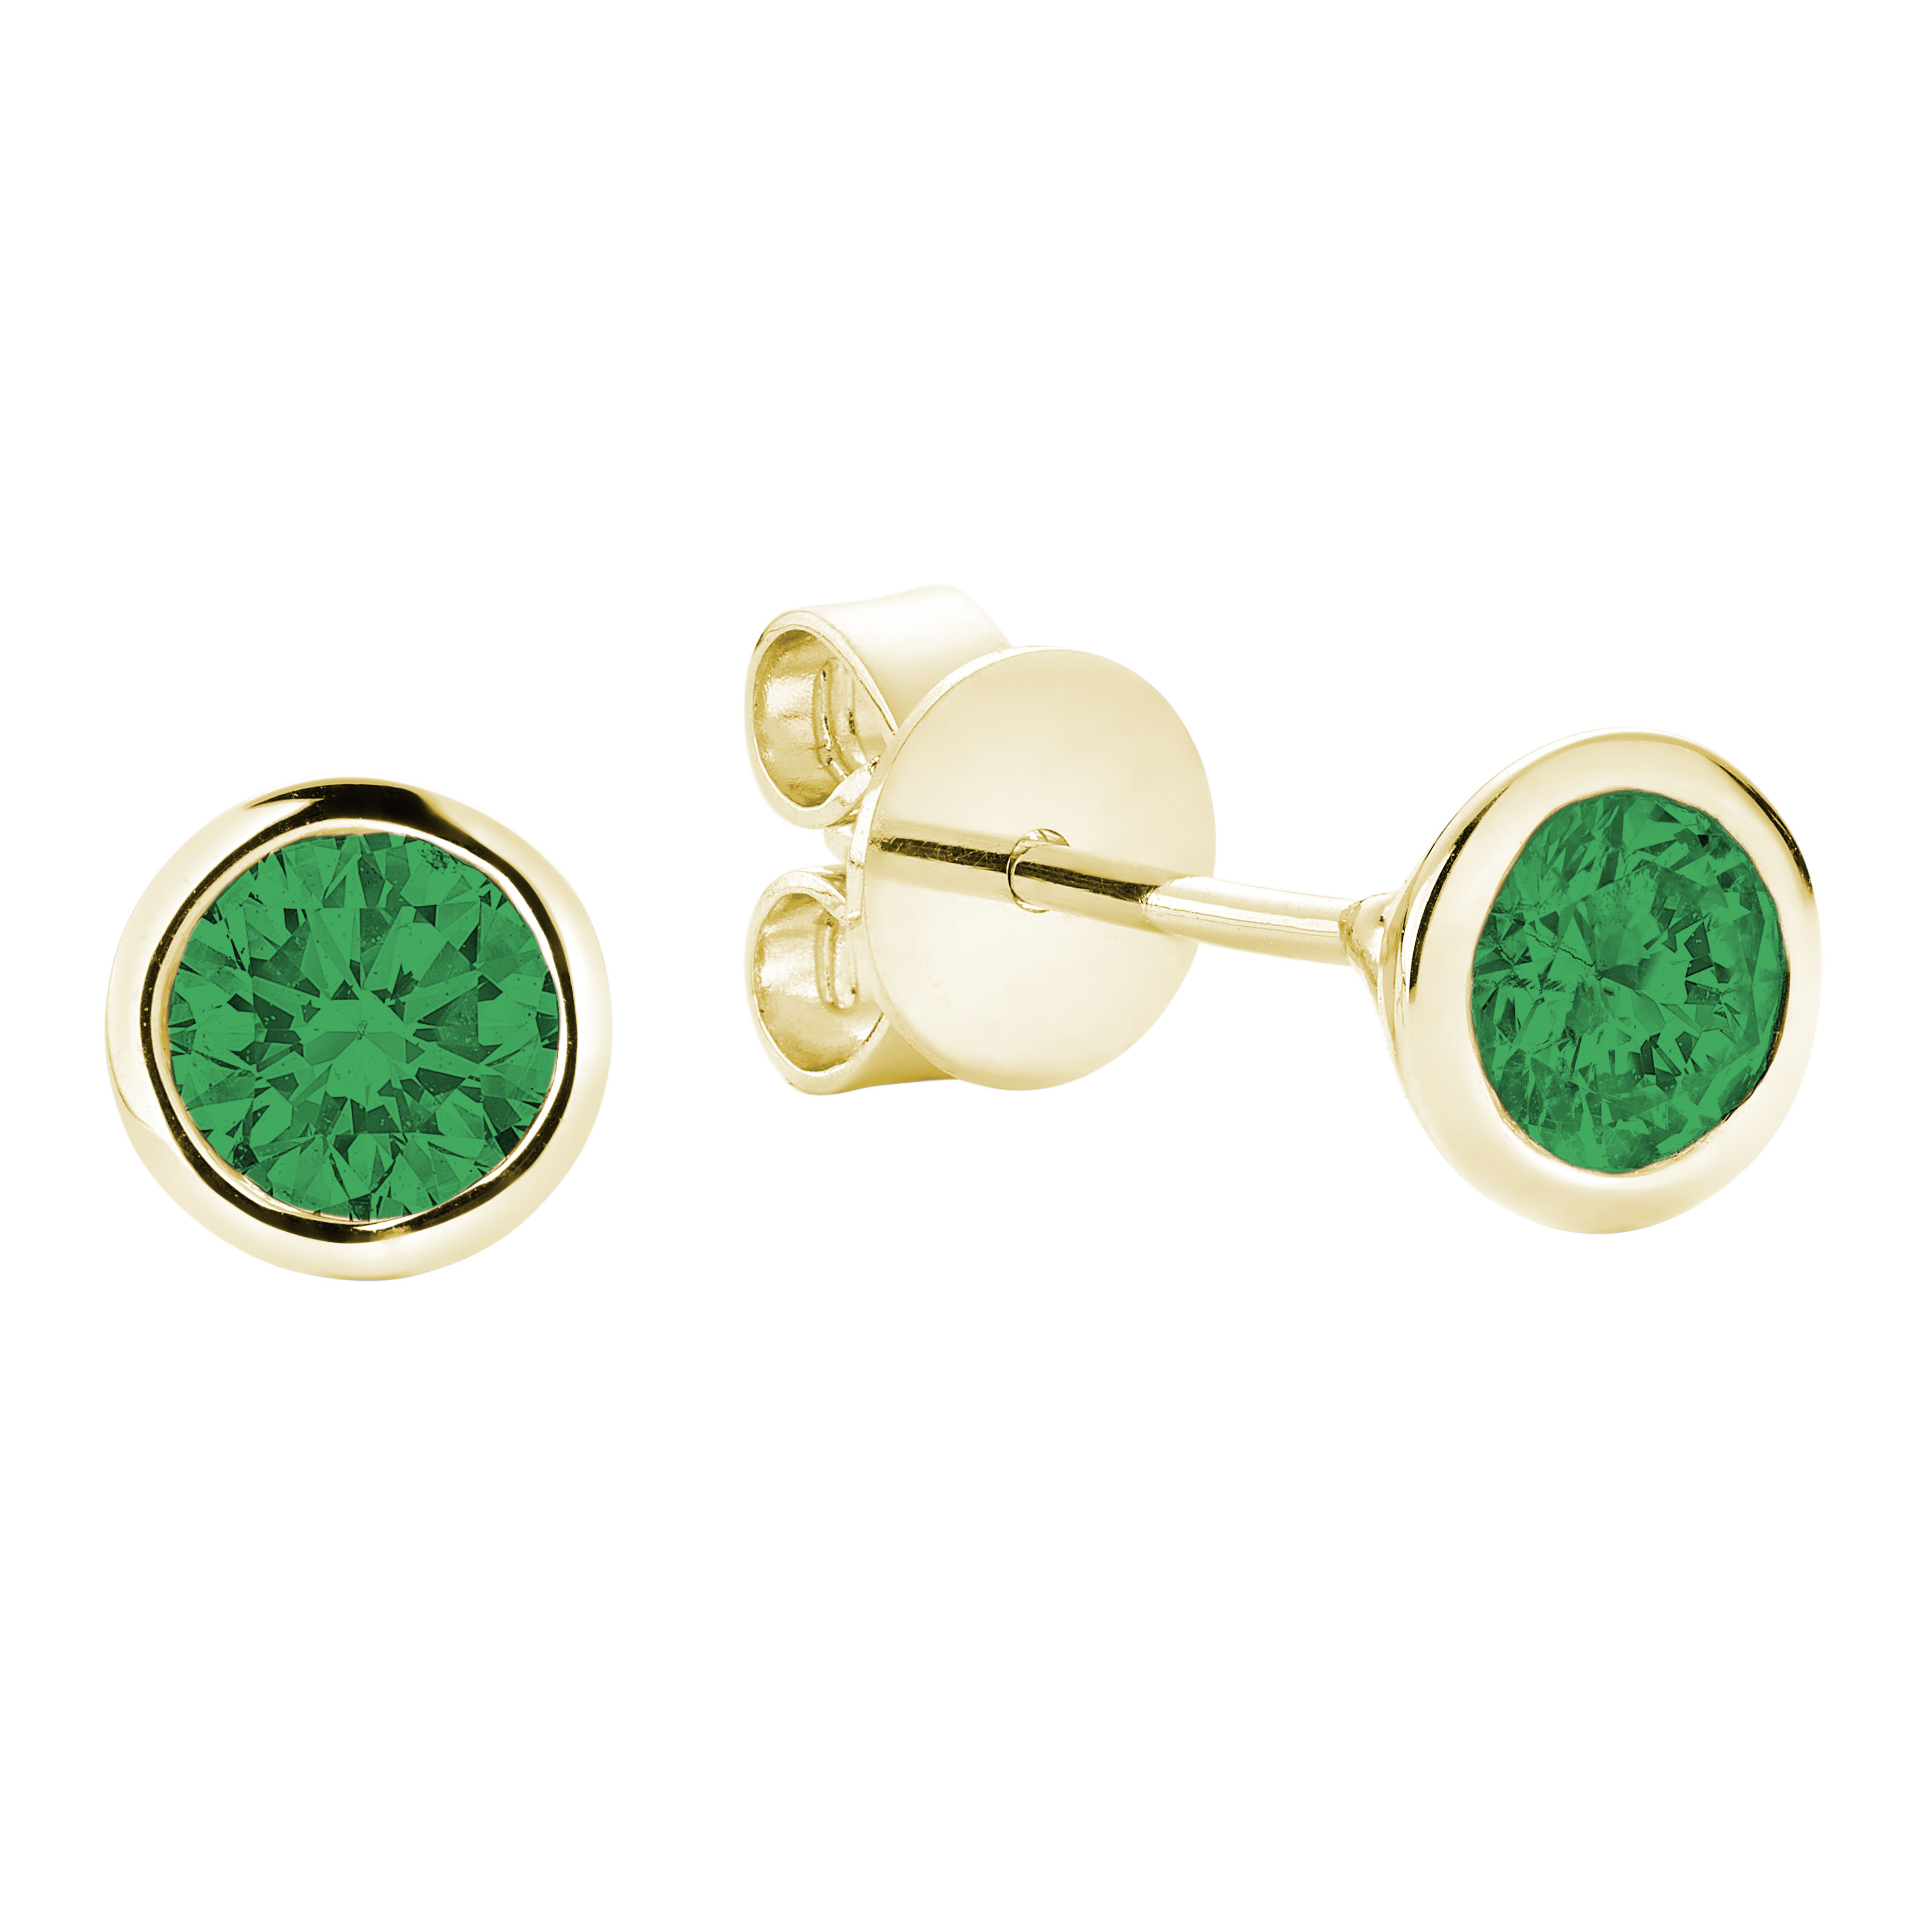 Earrings for woman - 10K yellow gold & Emerald